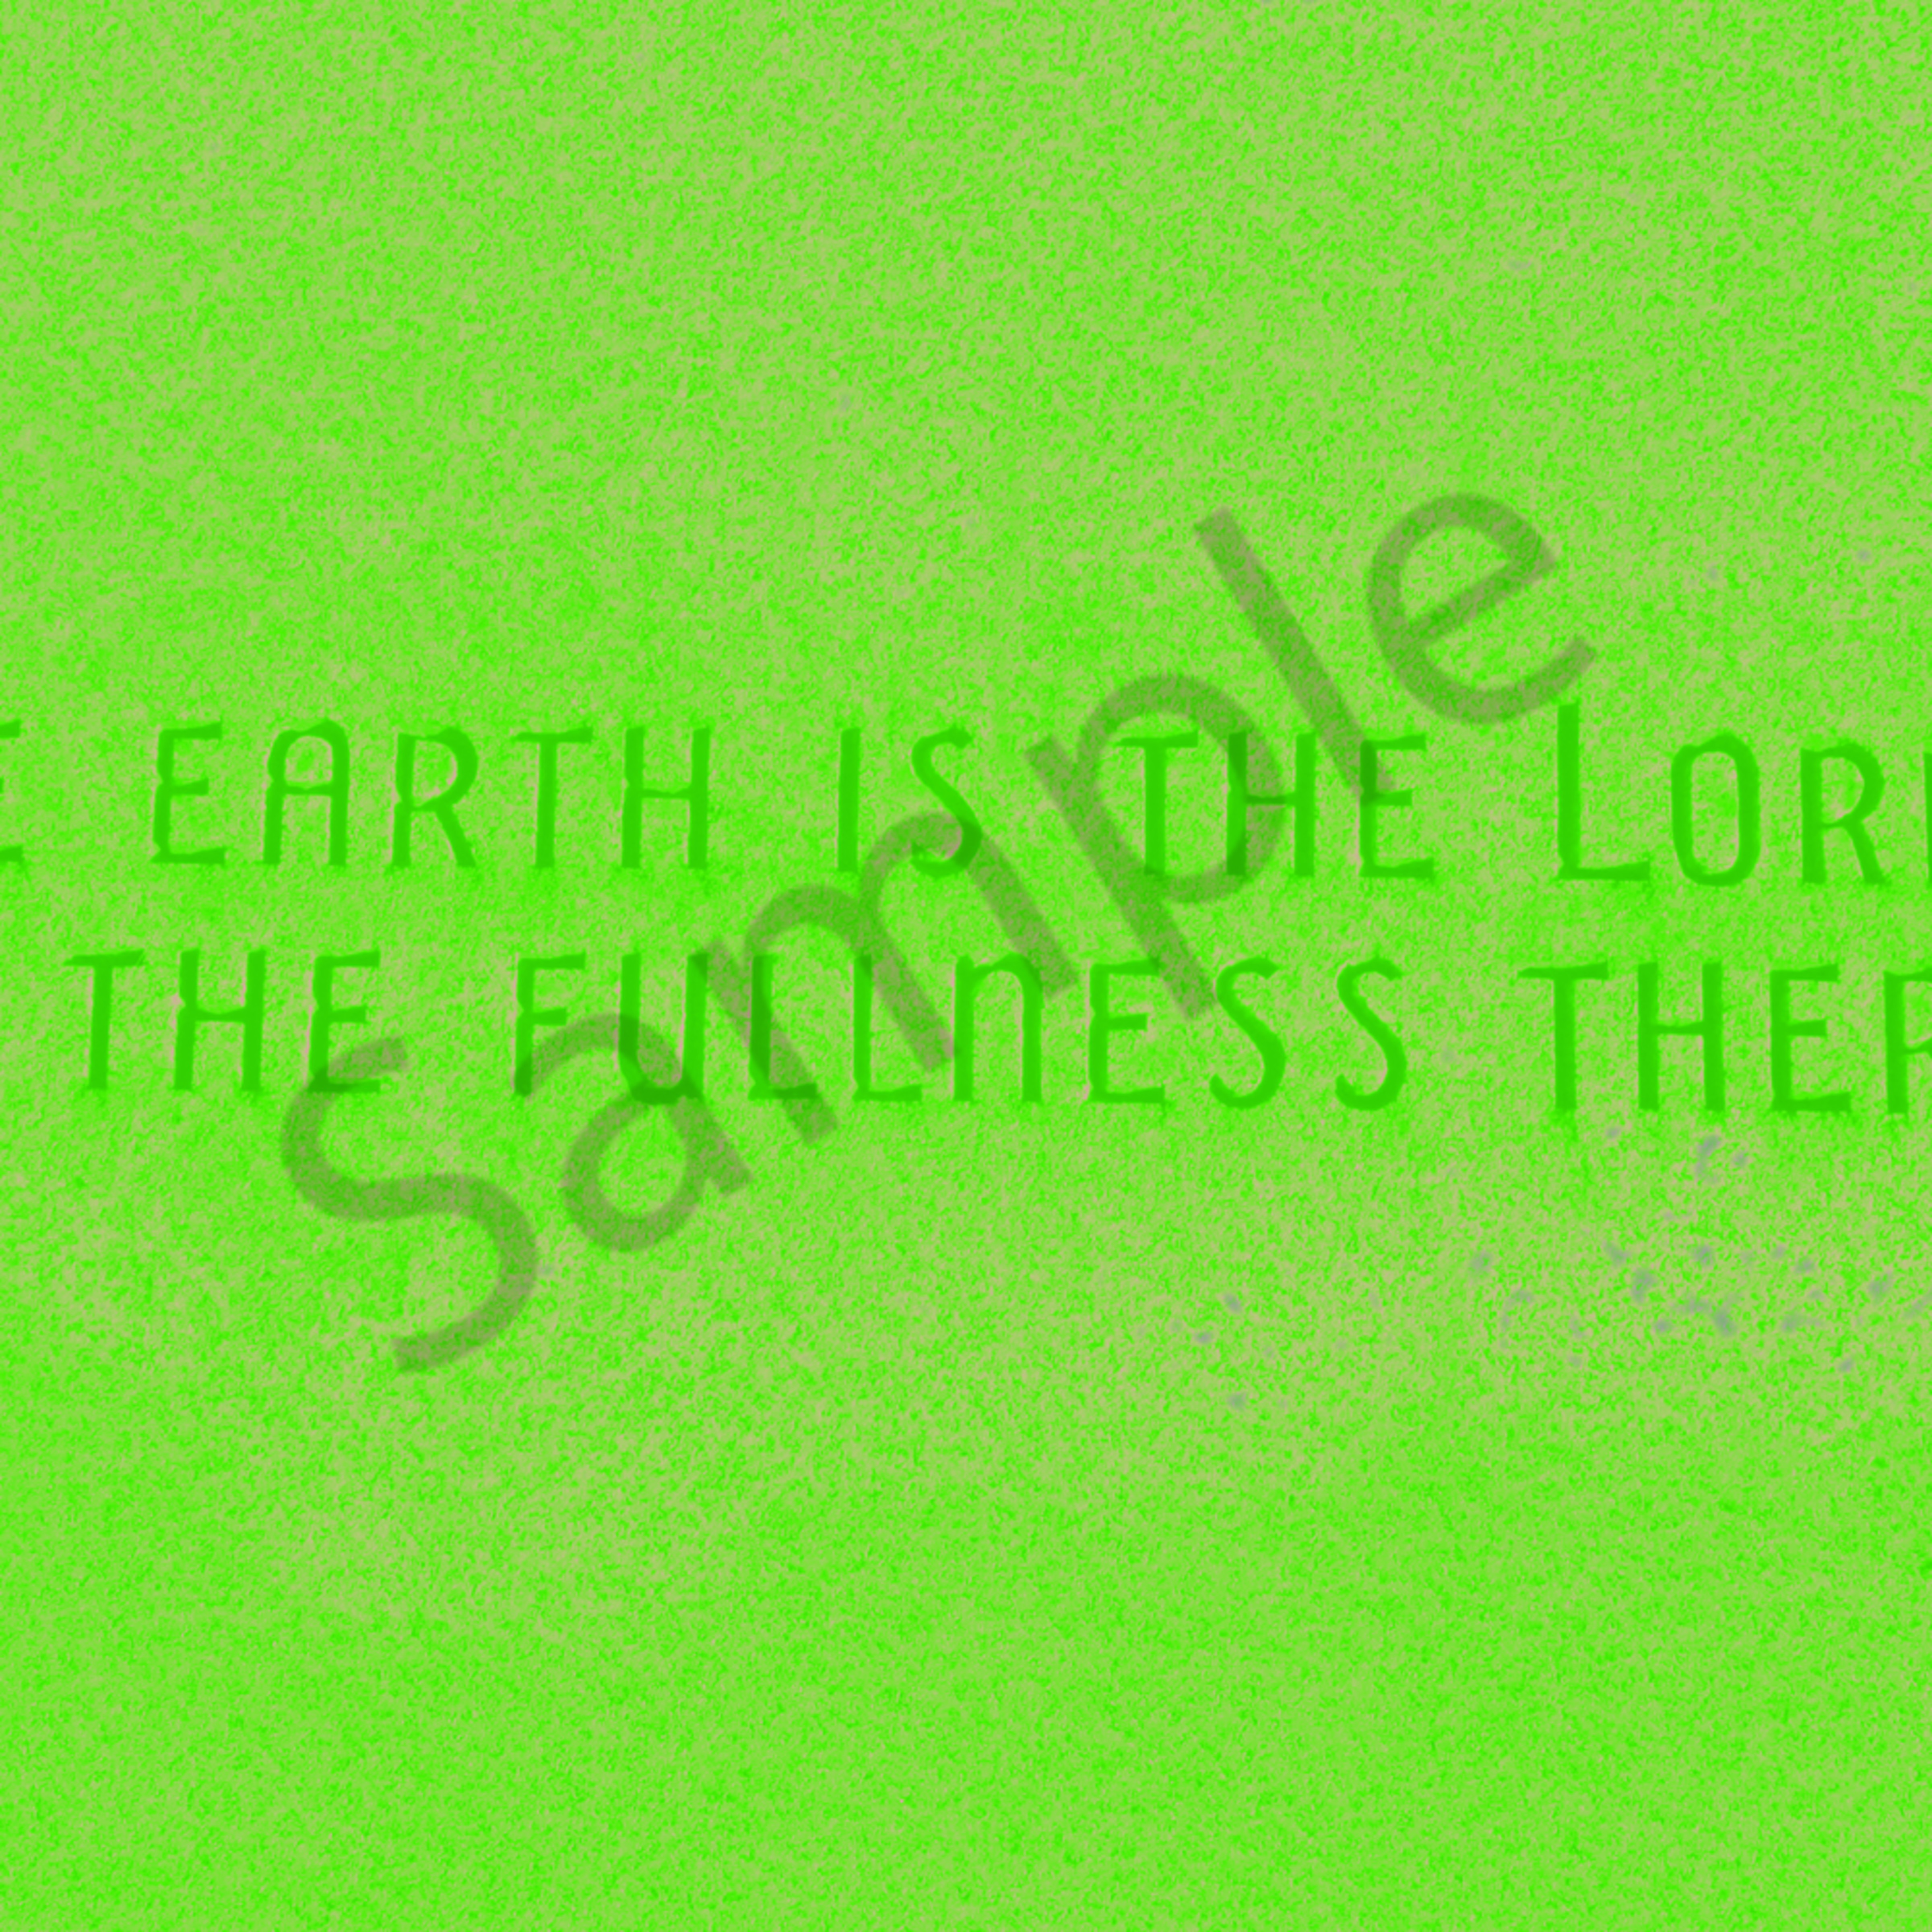 The earth is the lords gravestone jizsvw